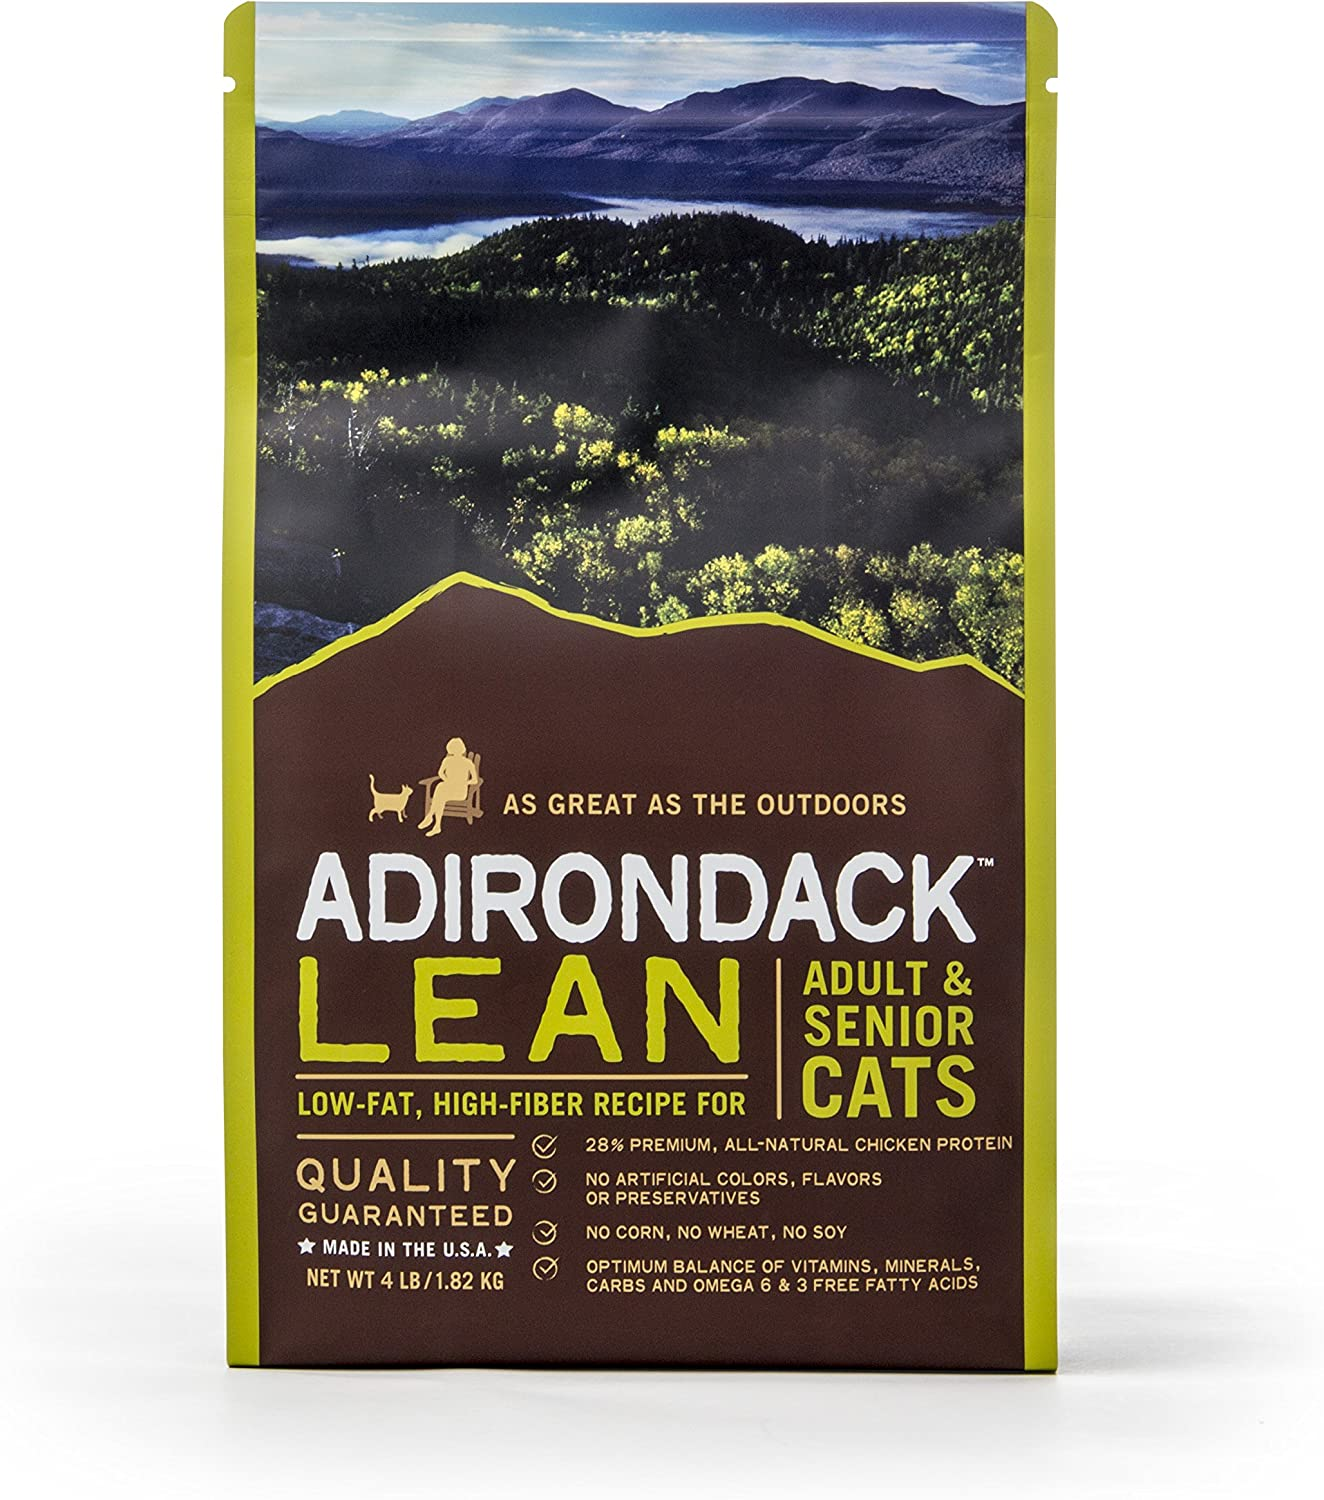 Adirondack Pet Food Lean Low-Fat, High Fiber Recipe for Adult & Senior Cats